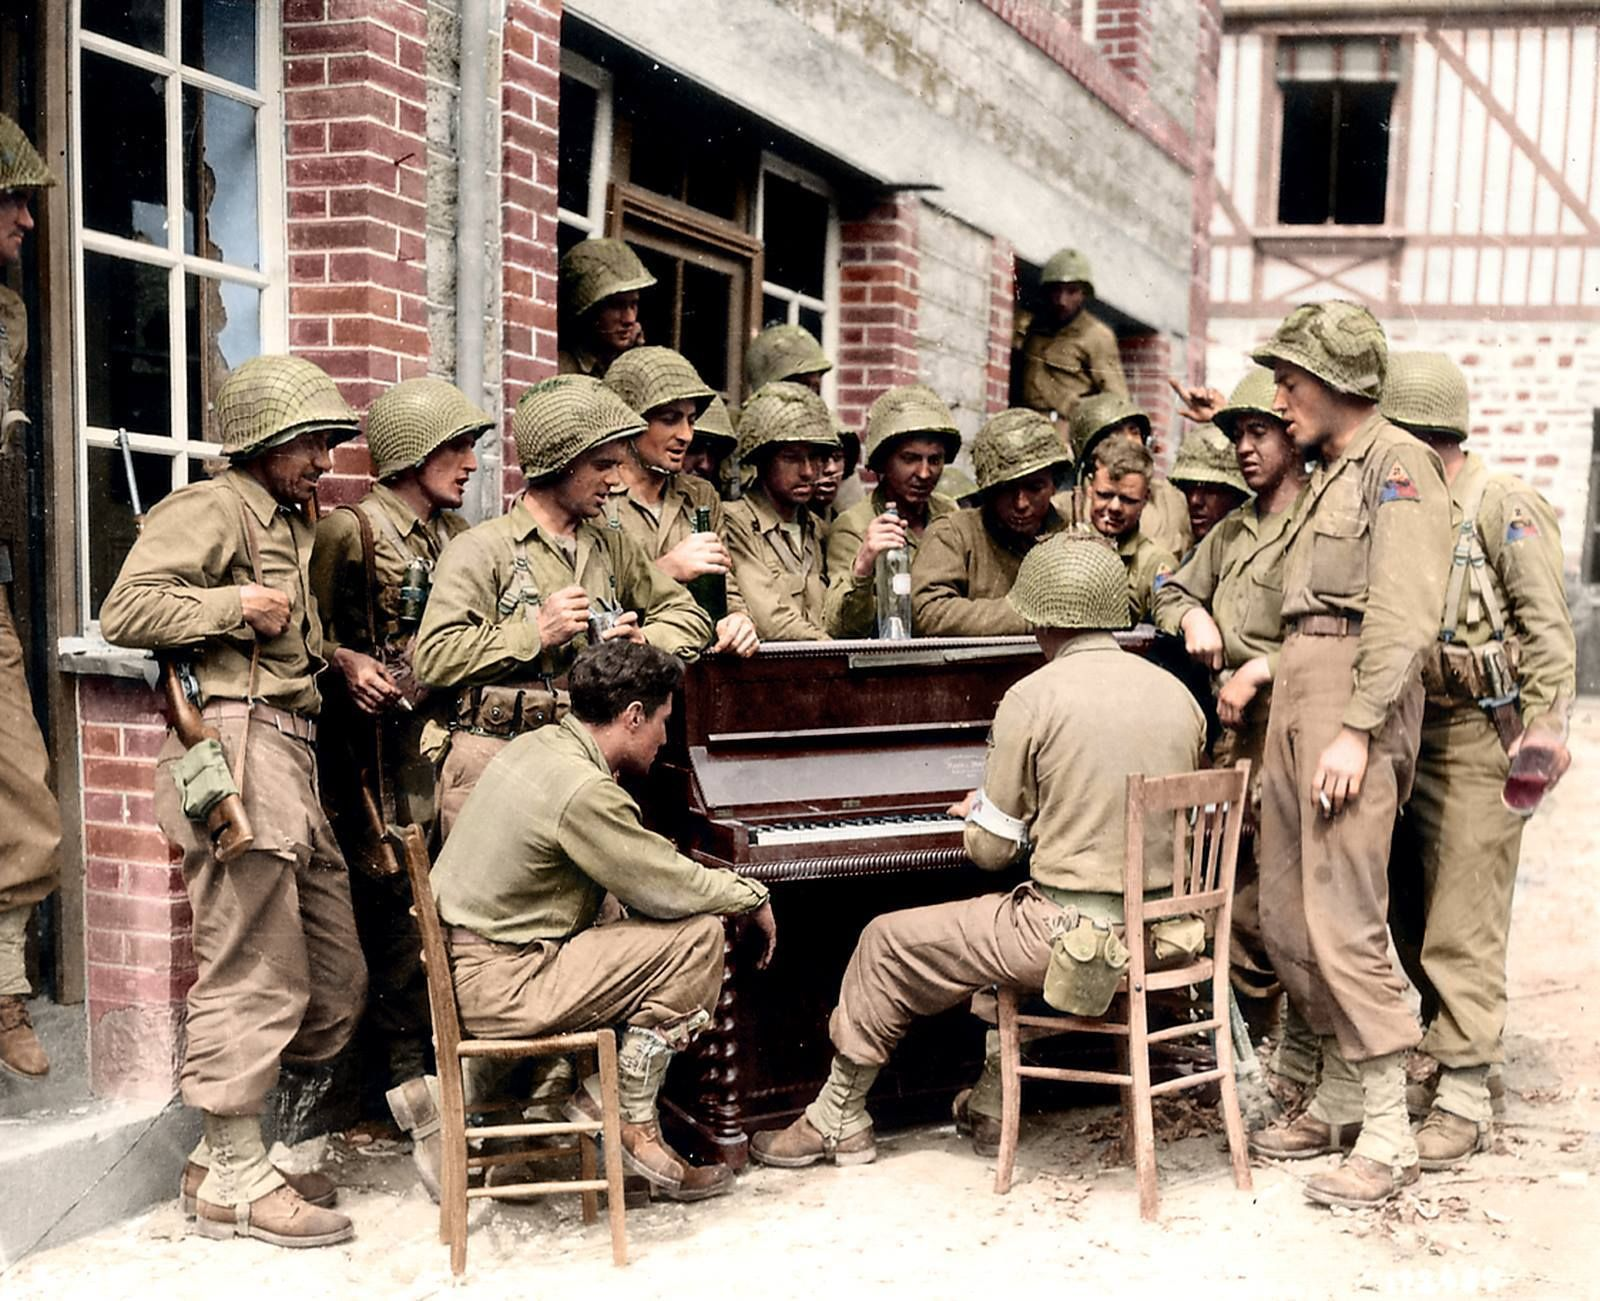 A Group Of Men From The 17th Armored Engineer Battalion Gather Round A Piano For A Sing A Long 10th Of August 1944 1600x1301 Histoire Militaire 2eme Guerre Mondiale Guerre Mondiale